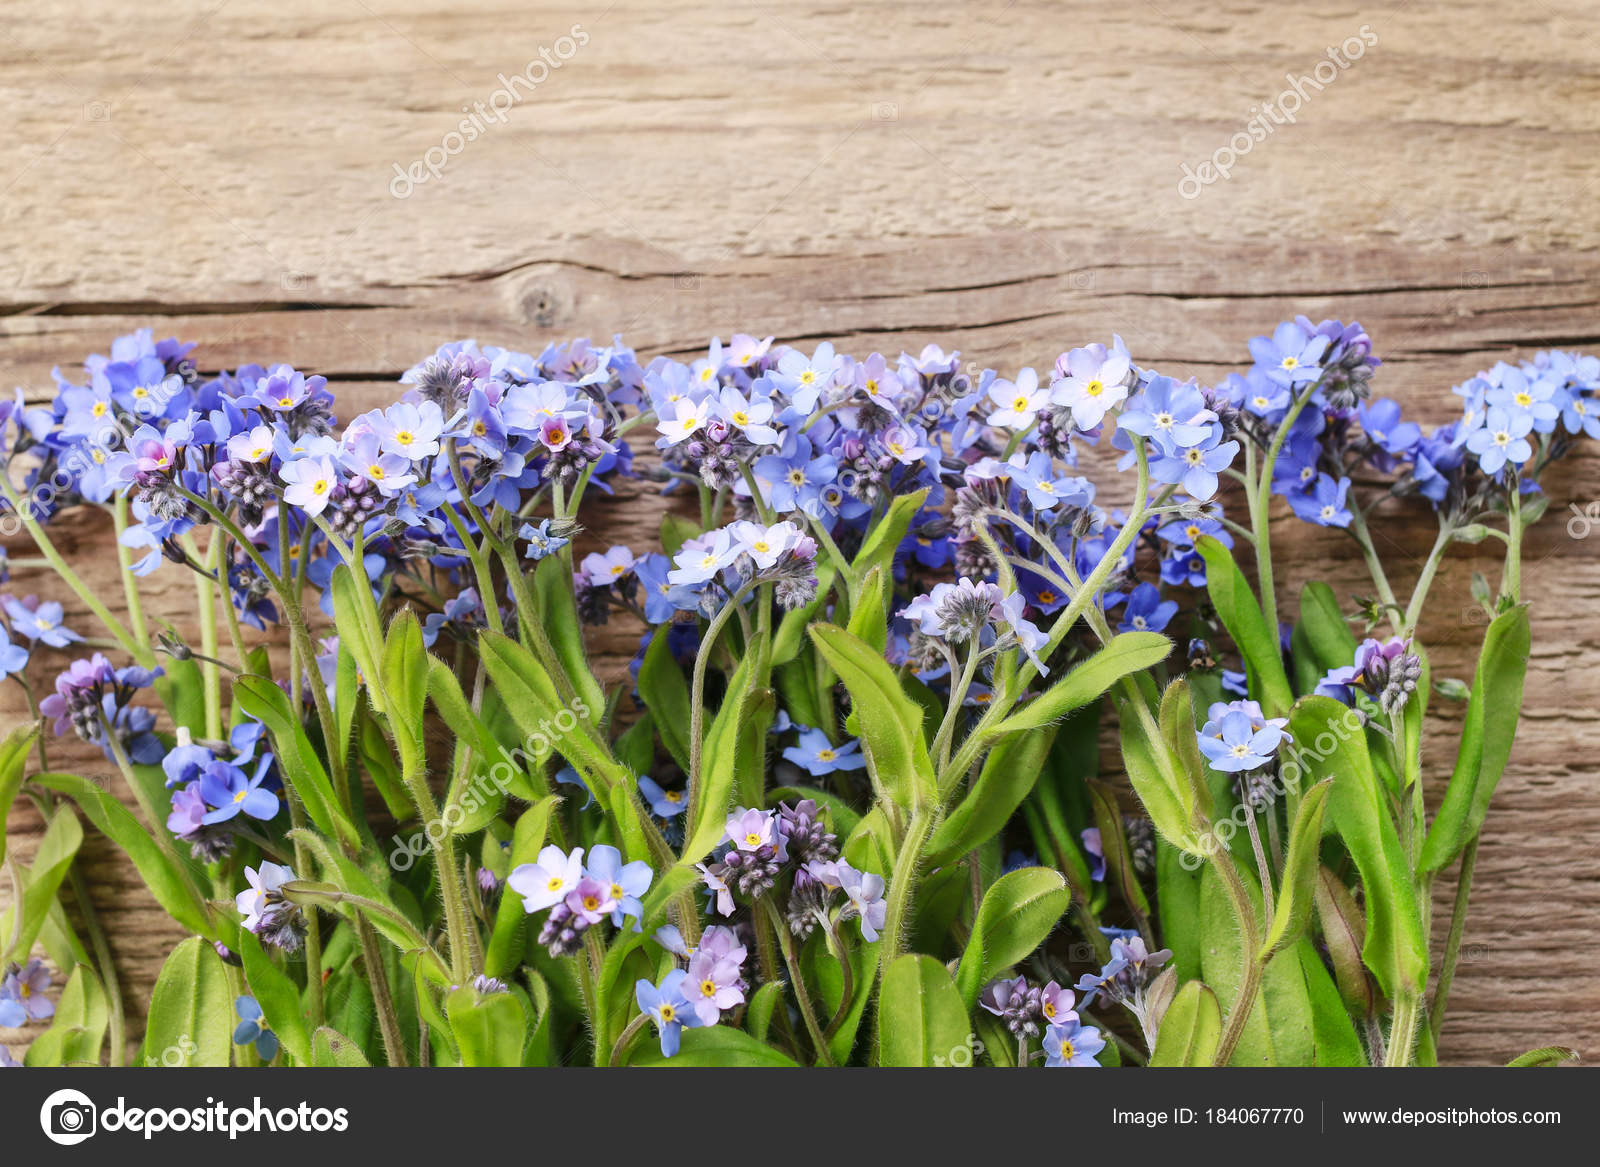 Forget me not flowers on wooden background stock photo forget me not flowers on wooden background stock photo izmirmasajfo